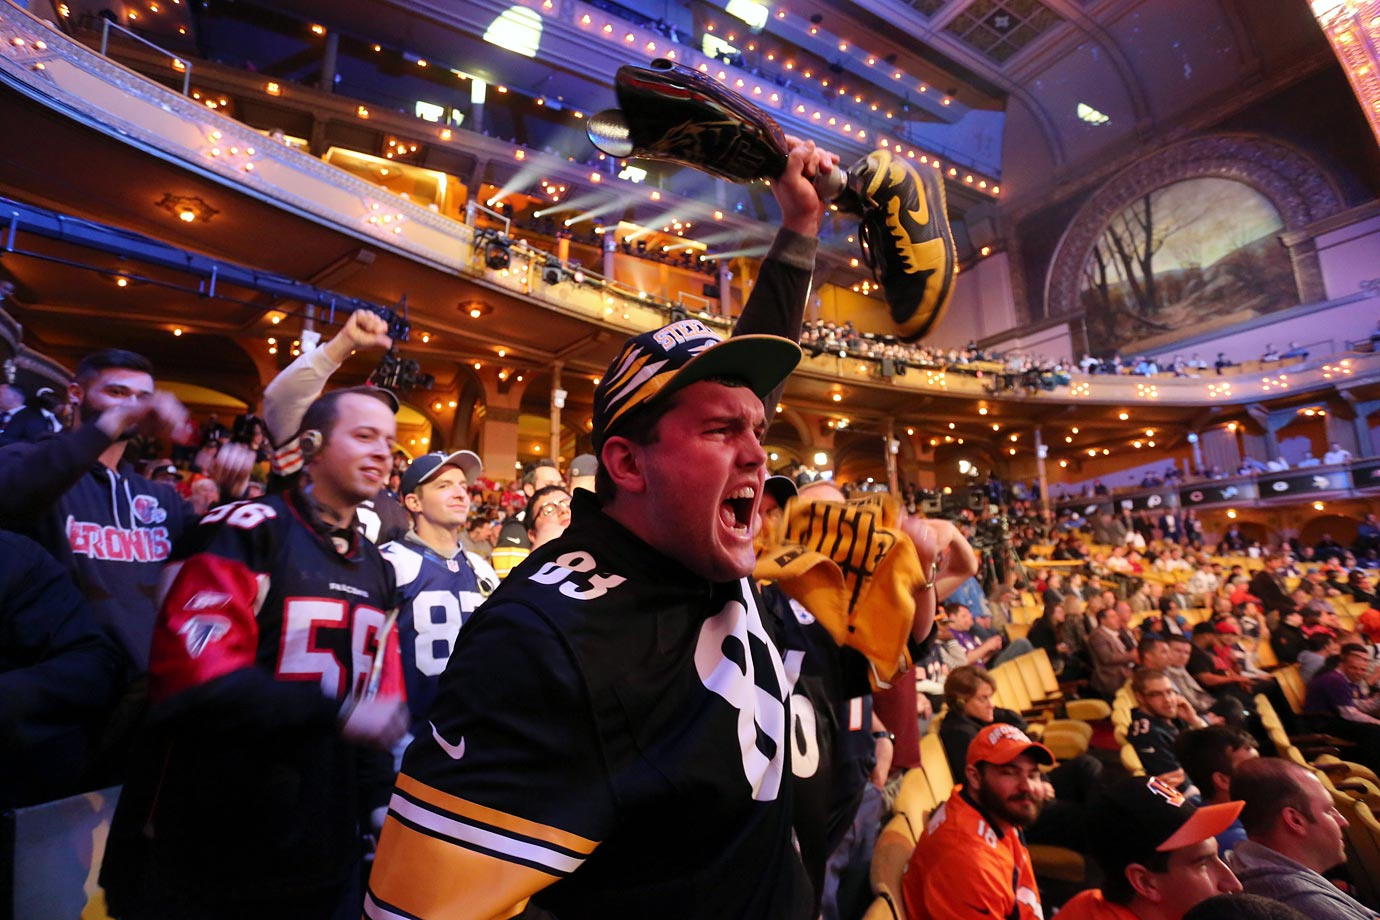 A Steelers fan waves his prosthetic leg in the air to celebrate PIttsburgh's selection of Alvin Dupree.